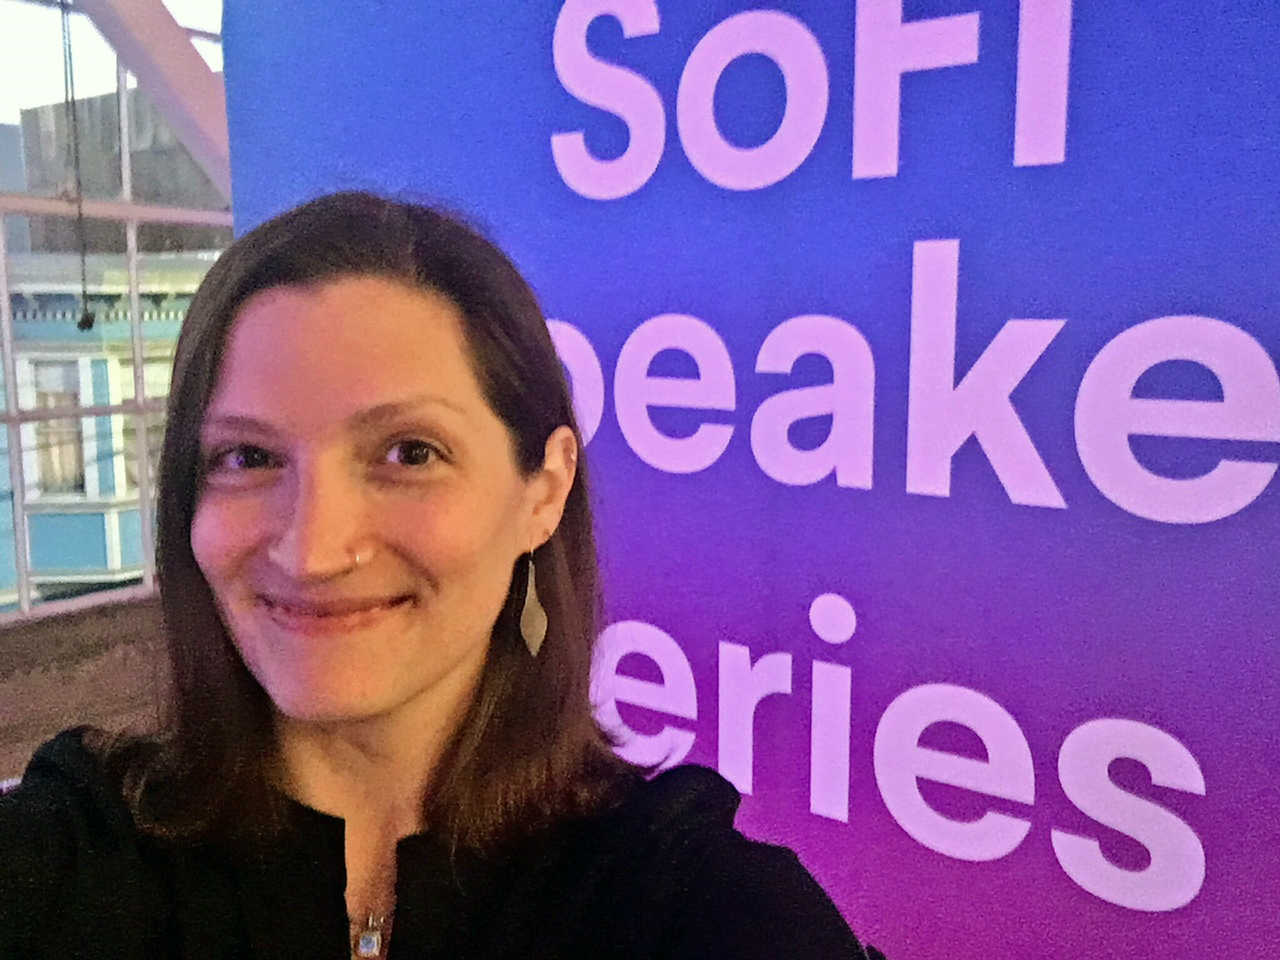 Tanja Hester of Our Next Life at SoFi Speaker Series in San Francisco